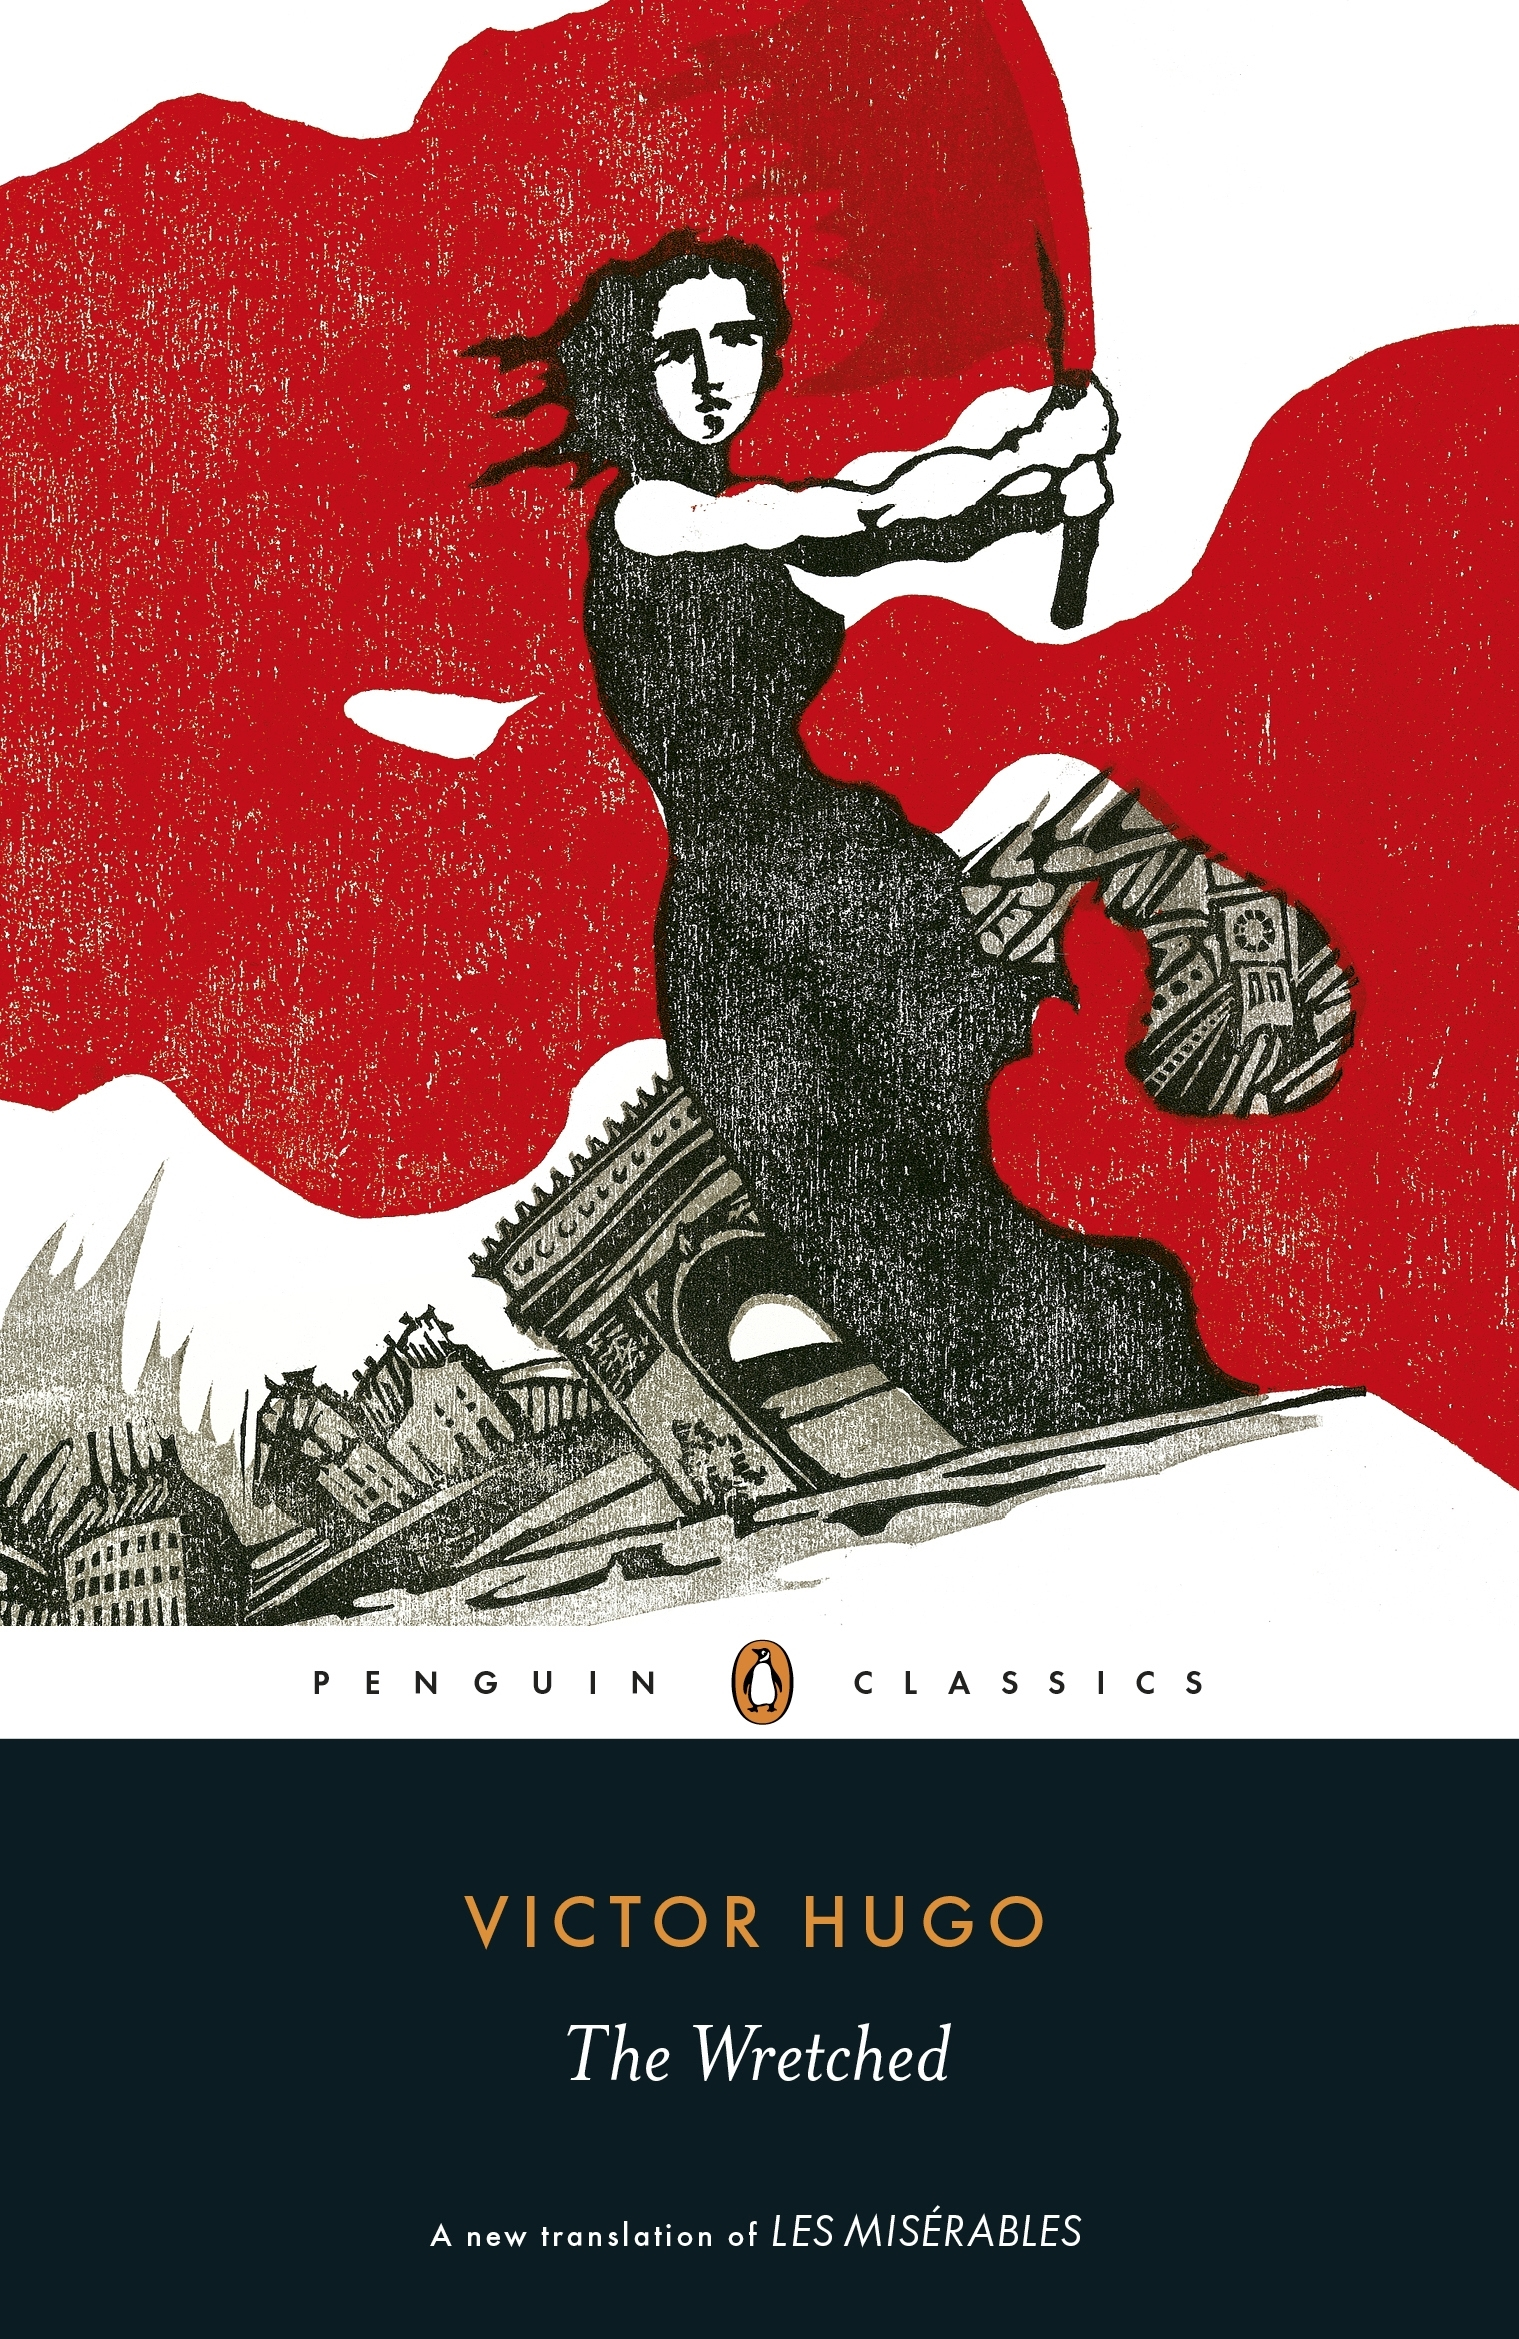 injustice essays die besten ideen zu social injustice auf  victor hugo essays les miserables by victor hugo social injustice essay